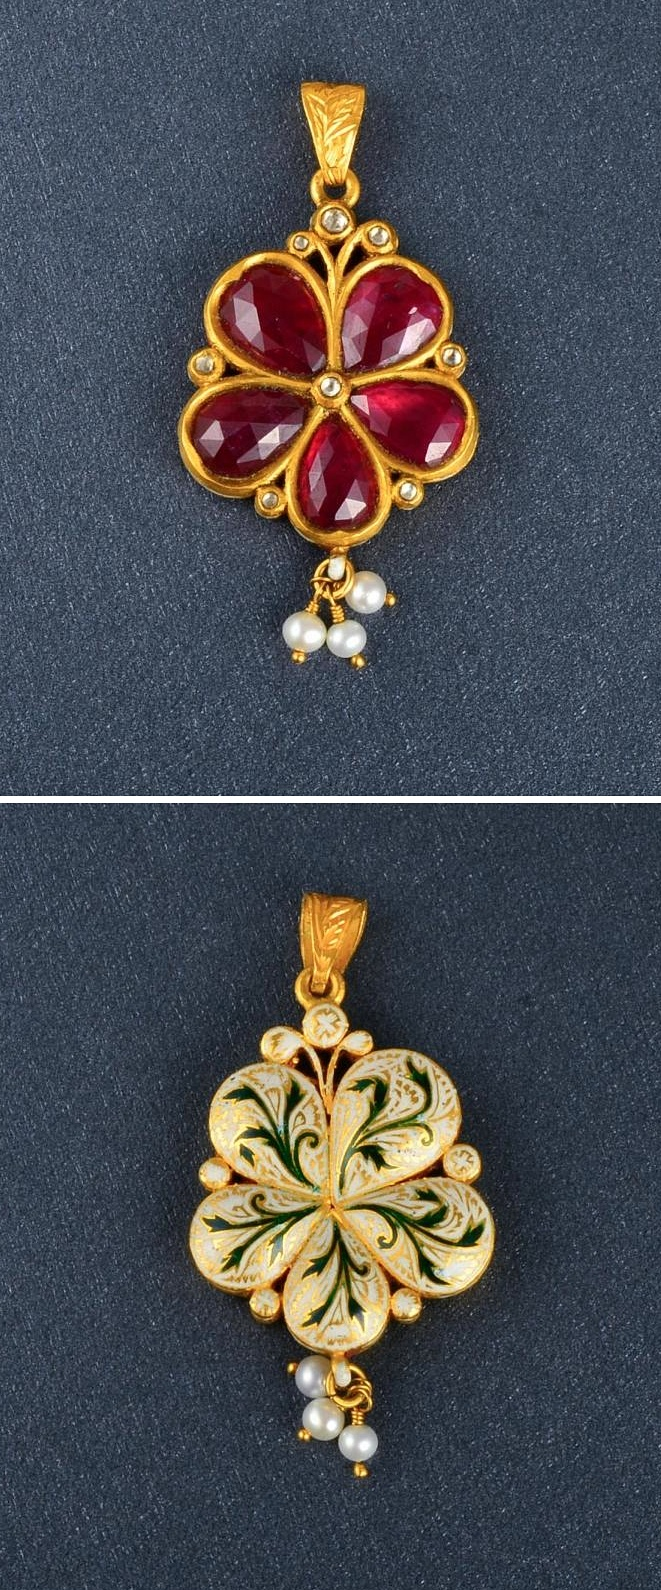 """An Indian ruby and diamond flower pendant featuring 5 pear shaped, facet cut rubies weighing approx. 2CT for flower petals. The flower is adorned with 8 small rose cut diamonds and 3 small pearls. The back is painted with white and green filigree enamel design. The pendant measures 2"""" in length and weighs 6.5DWT."""